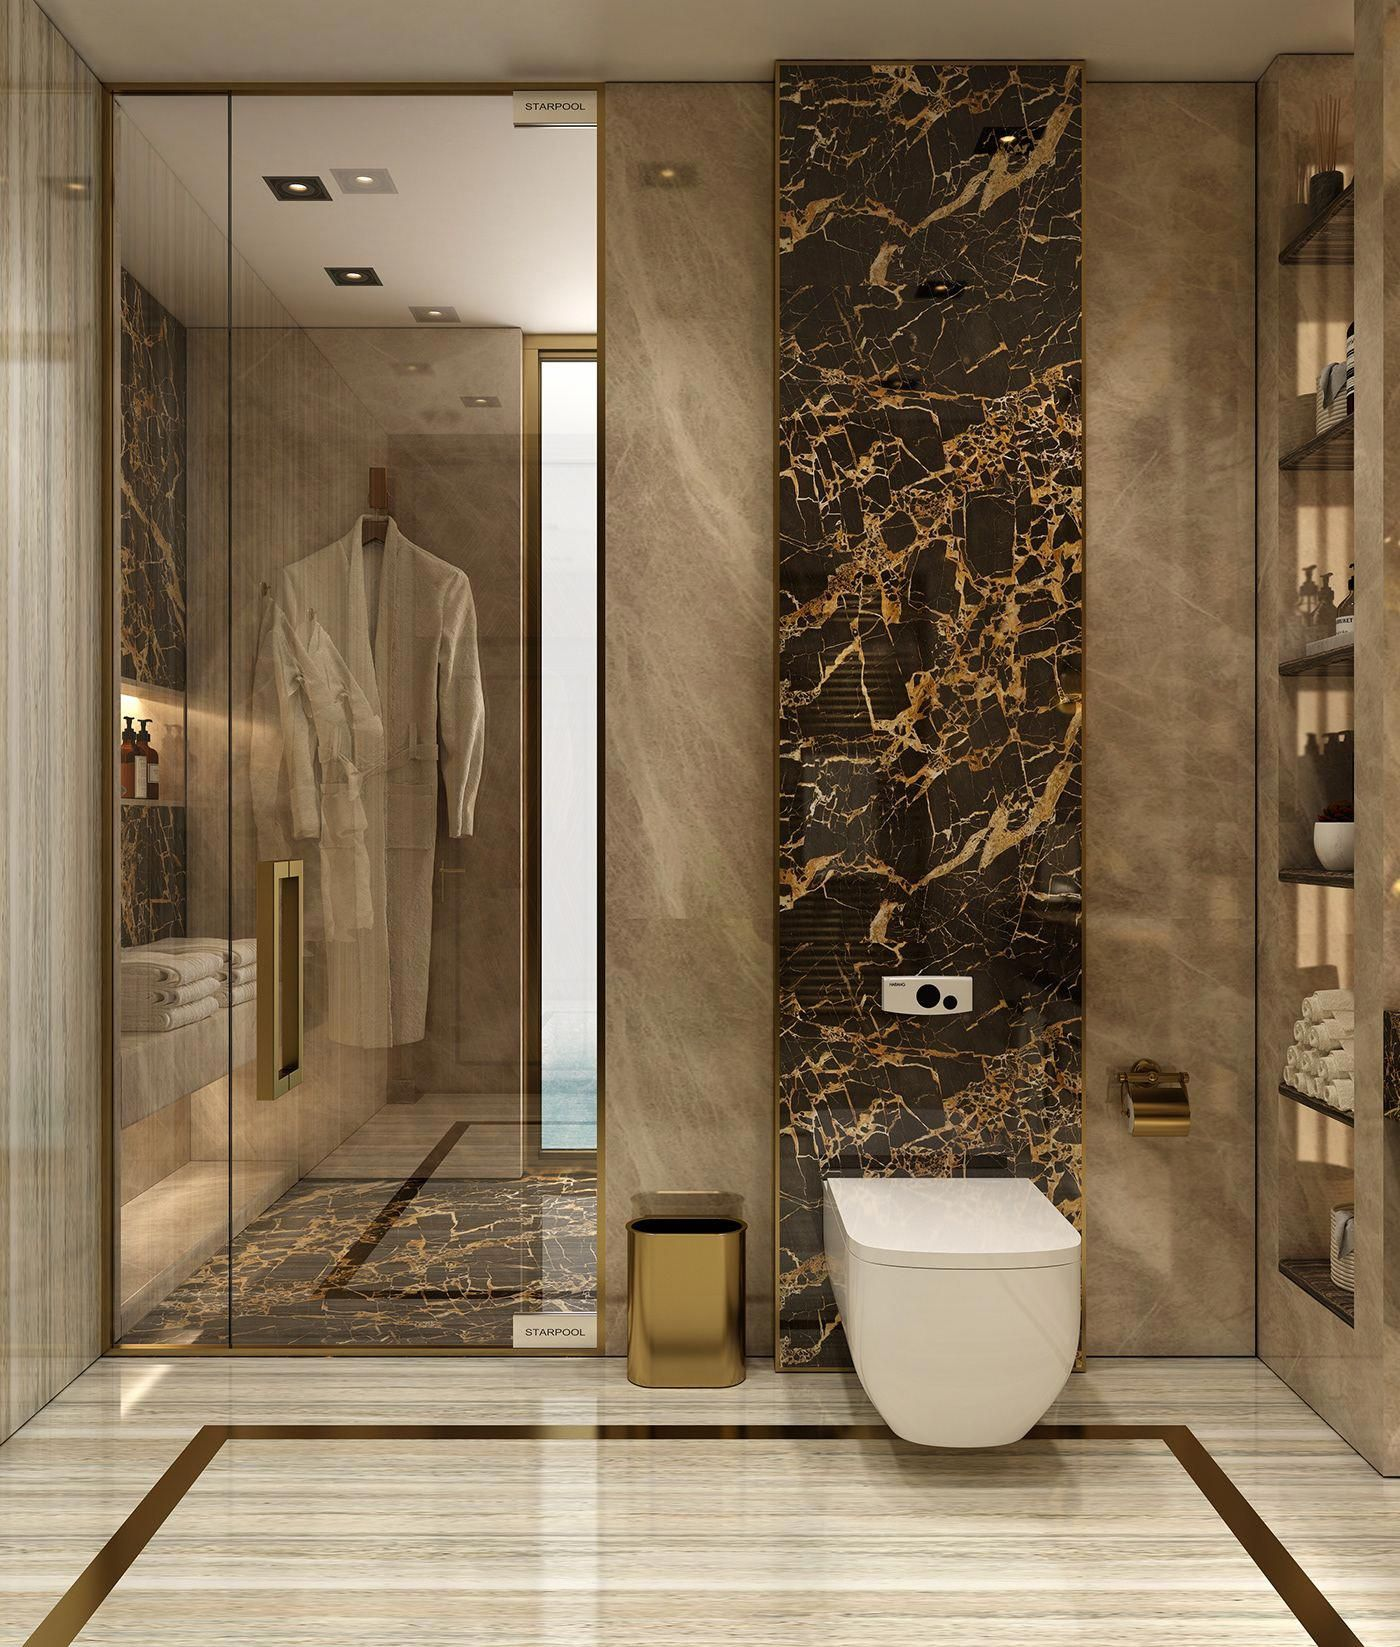 Luxurious Bathroom Luxurybathrooms Luxury Bathroom Master Baths Modern Bathroom Design Bathroom Design Luxury